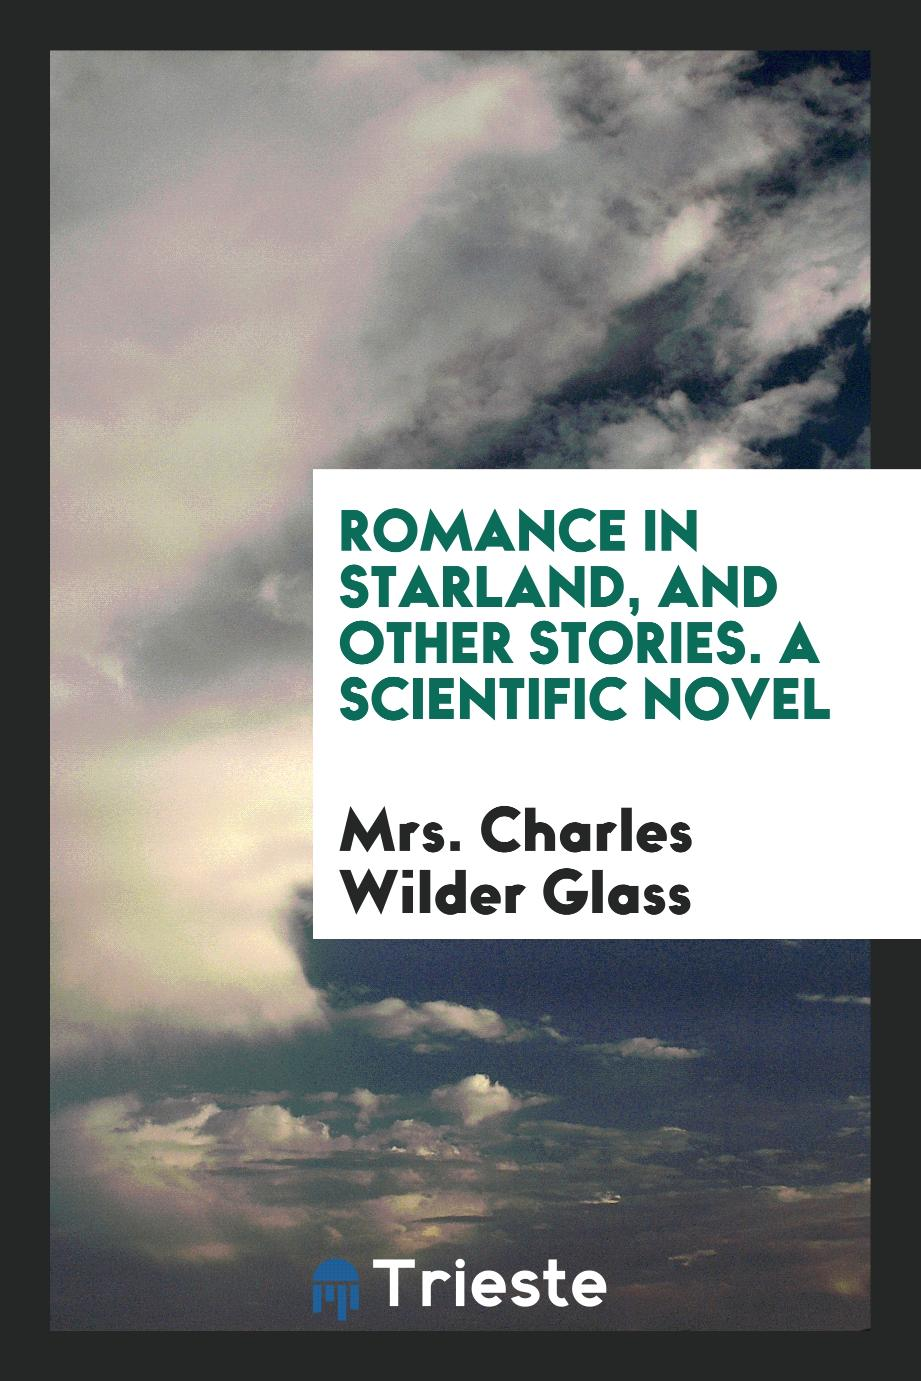 Romance in Starland, and Other Stories. A Scientific Novel